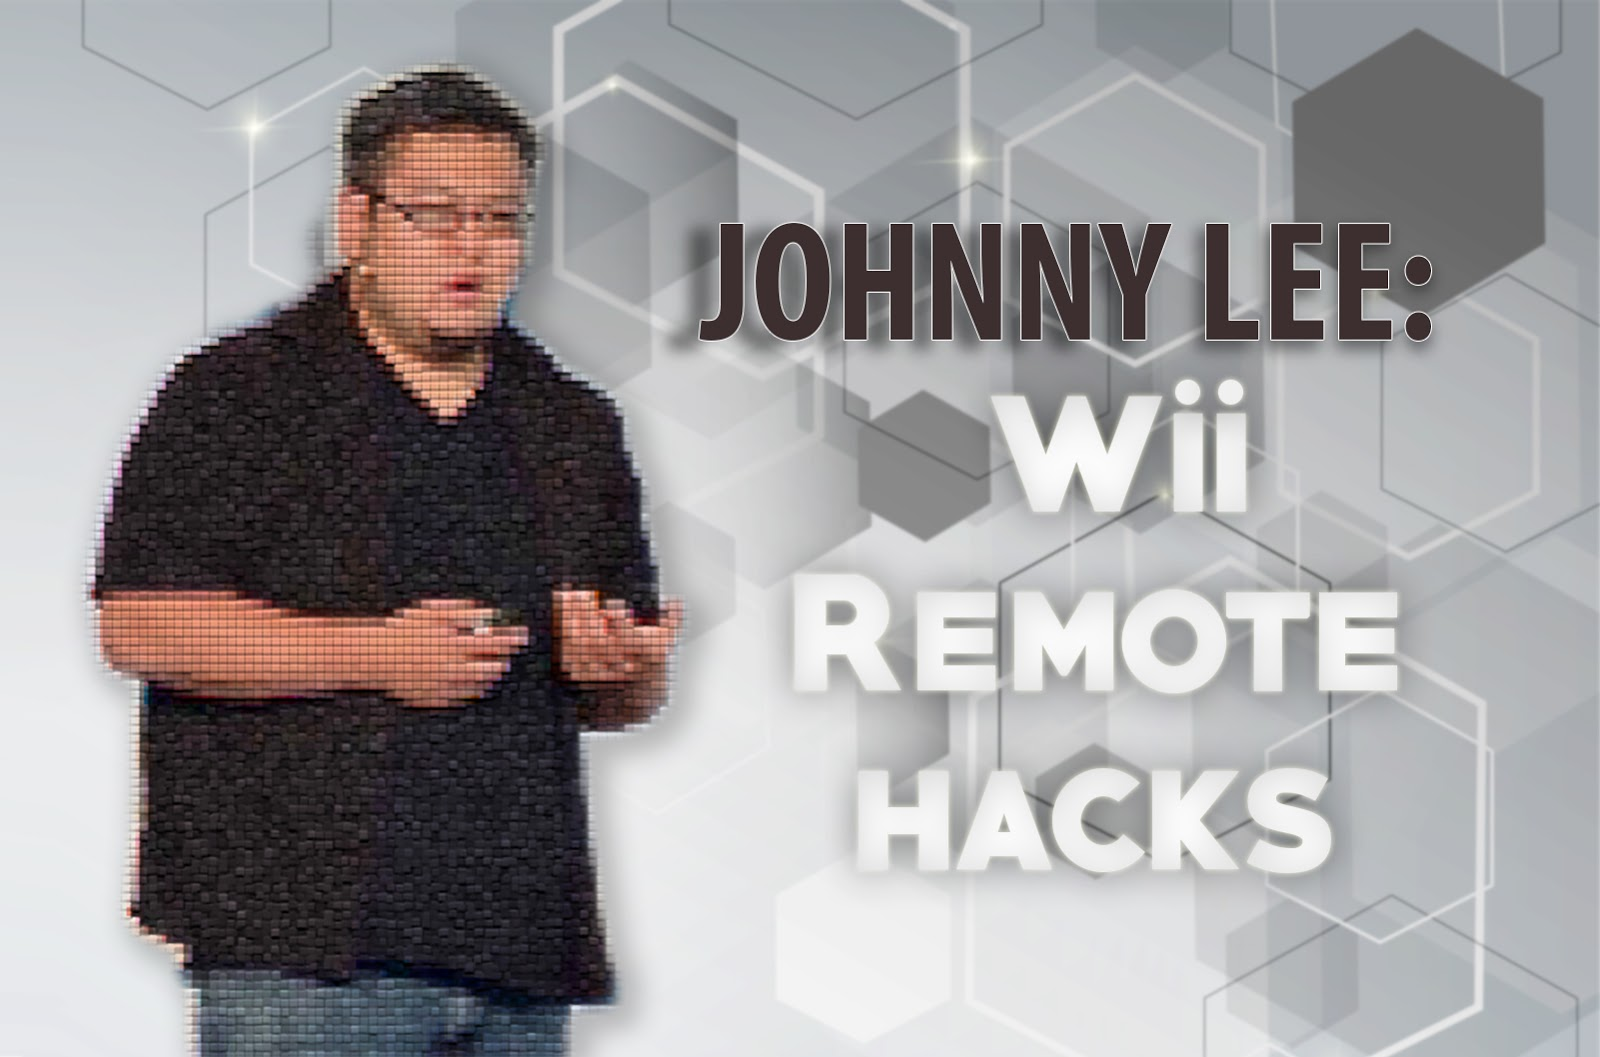 Johnny Lee: Wii Remote Hacks